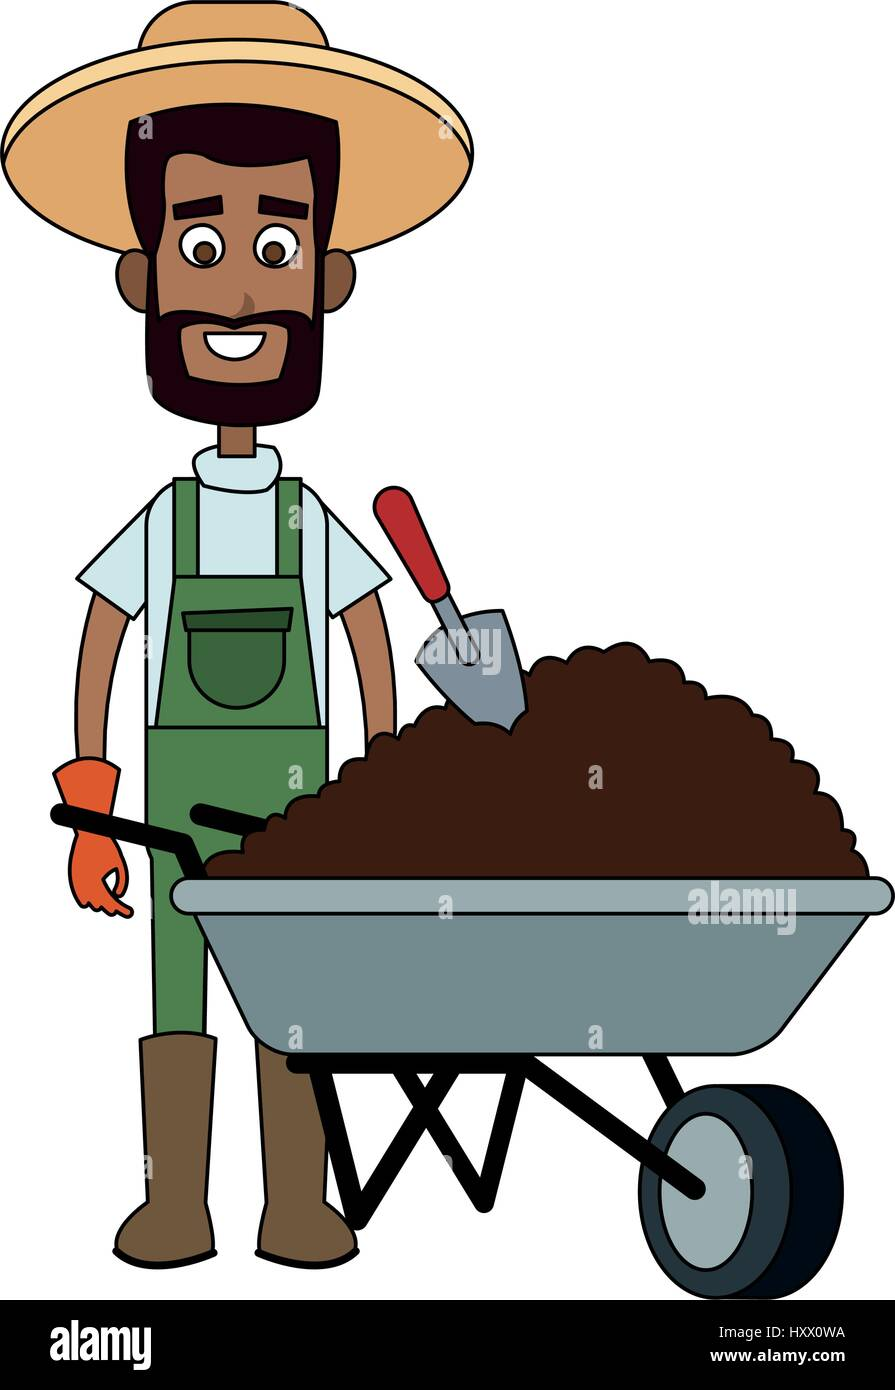 Male Farmer Carrying Dirt Cartoon Icon Image Vector Illustration Stock Vector Image Art Alamy